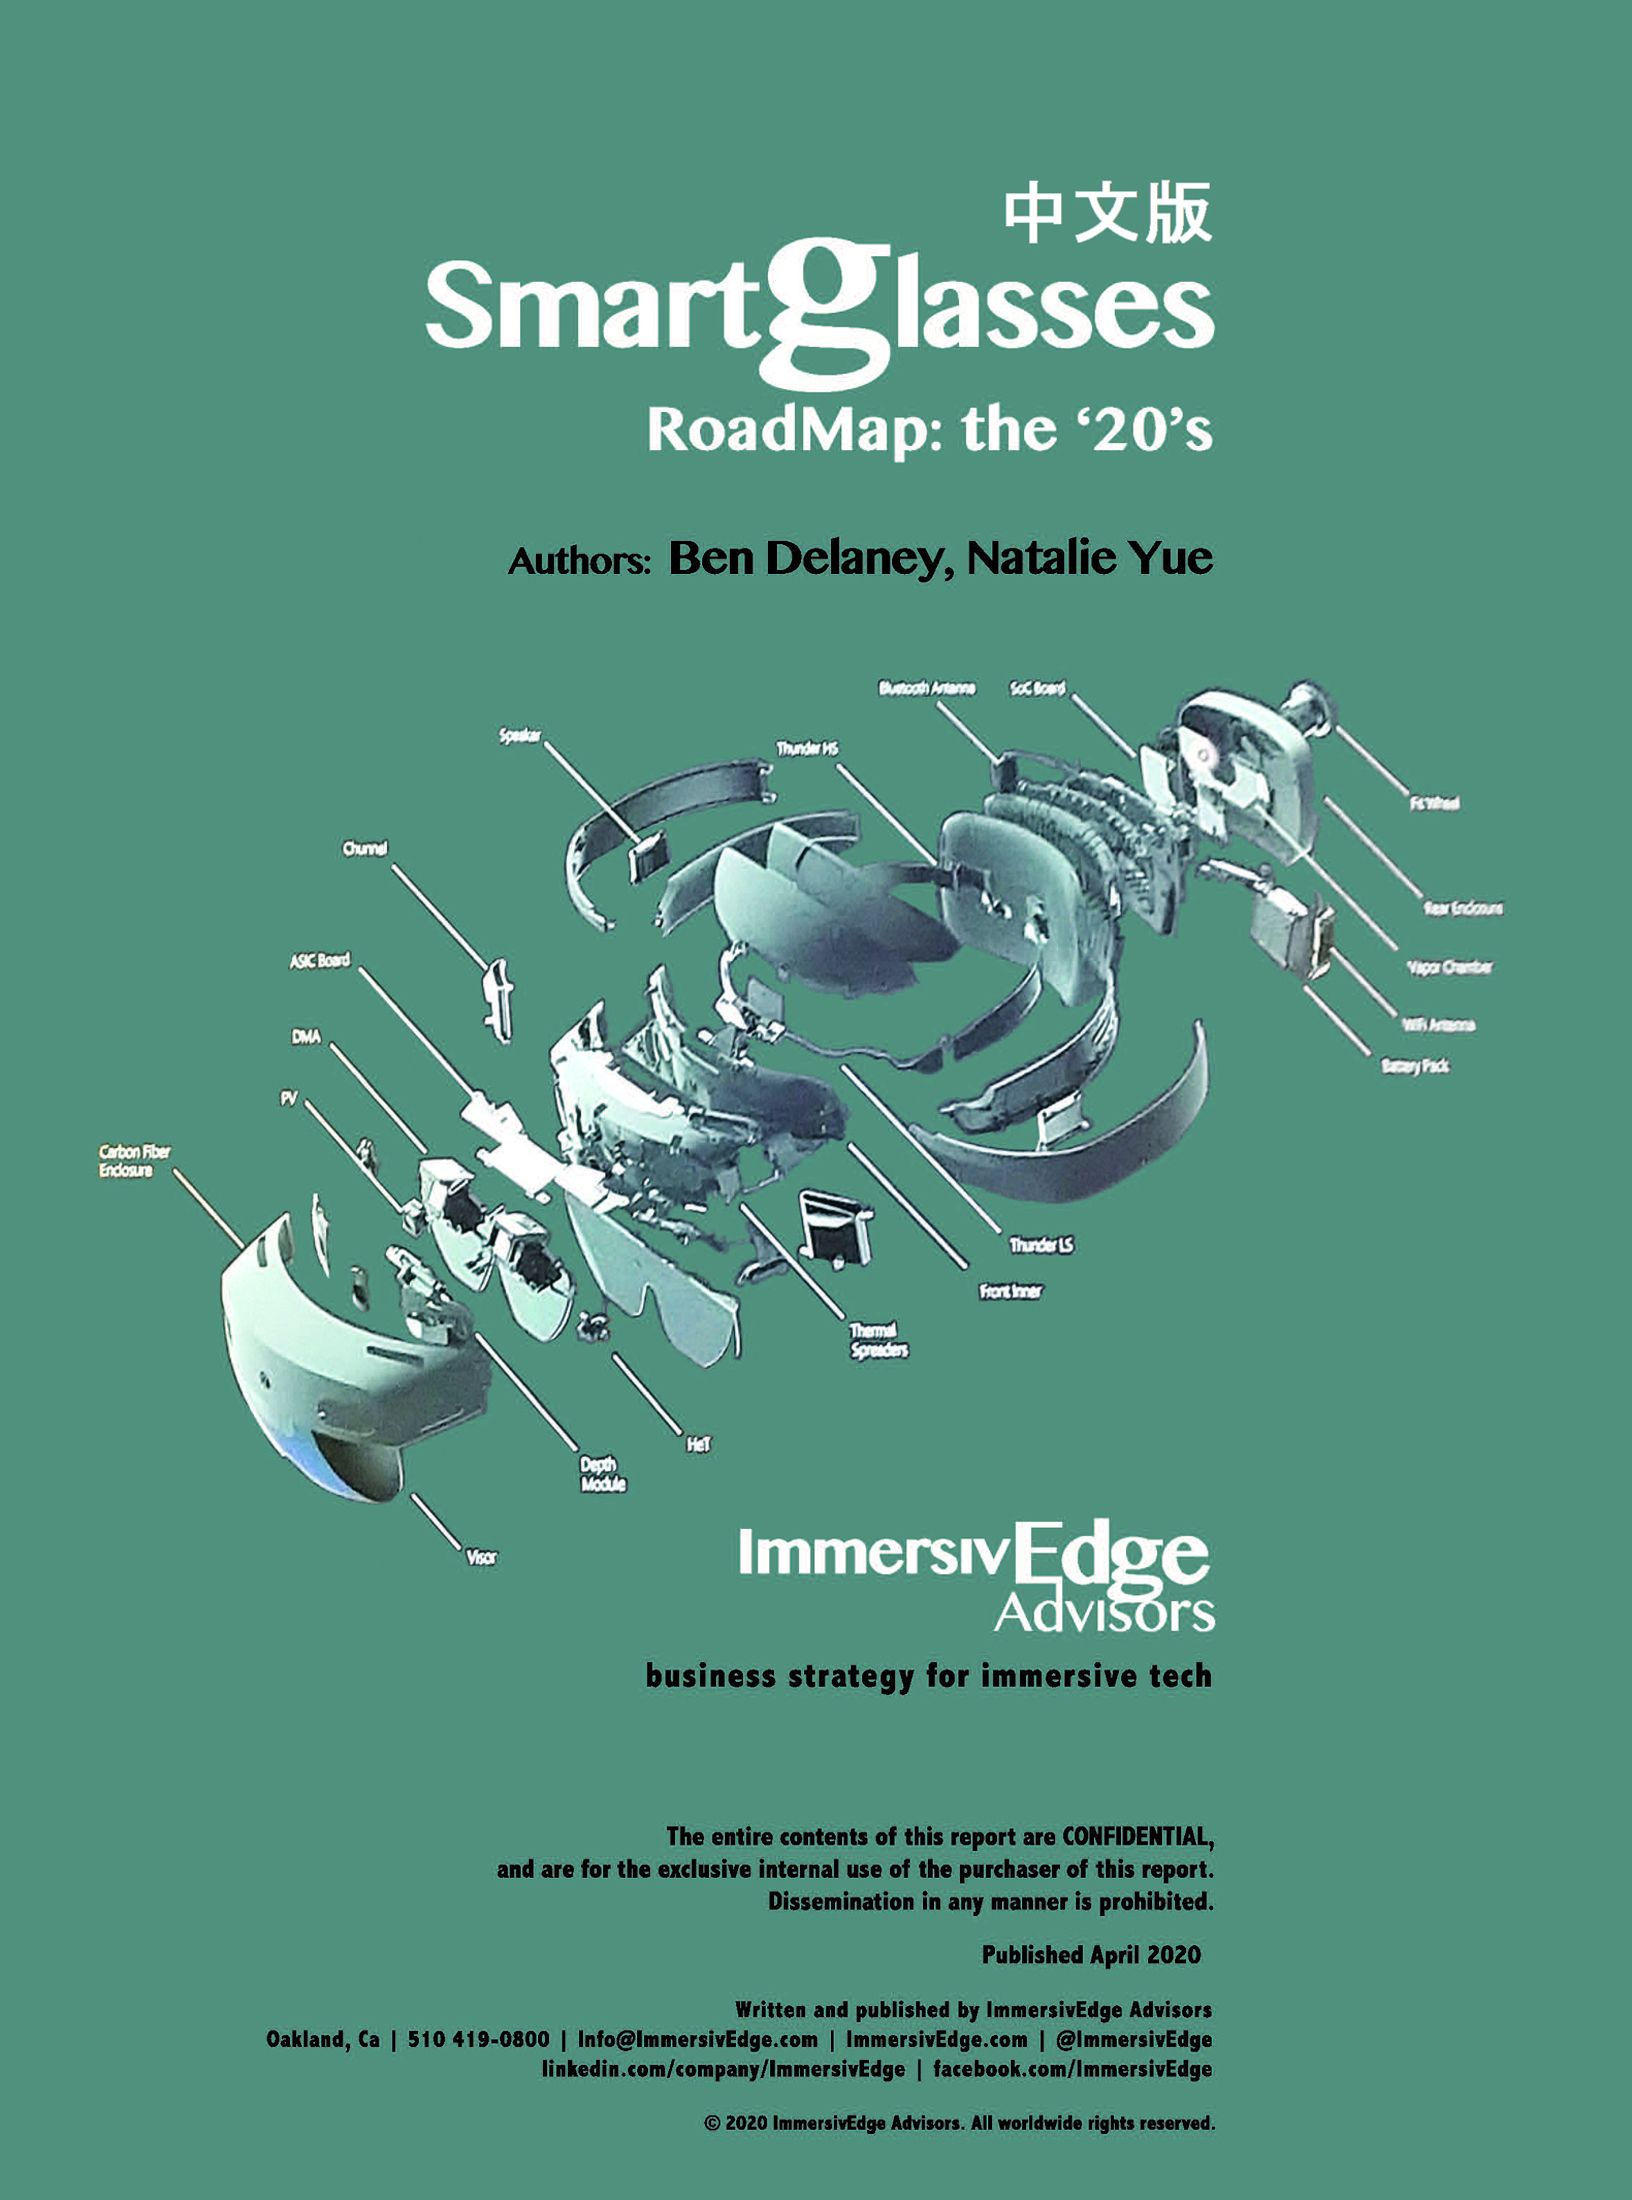 Smartglasses Roadmap in English or Chinese